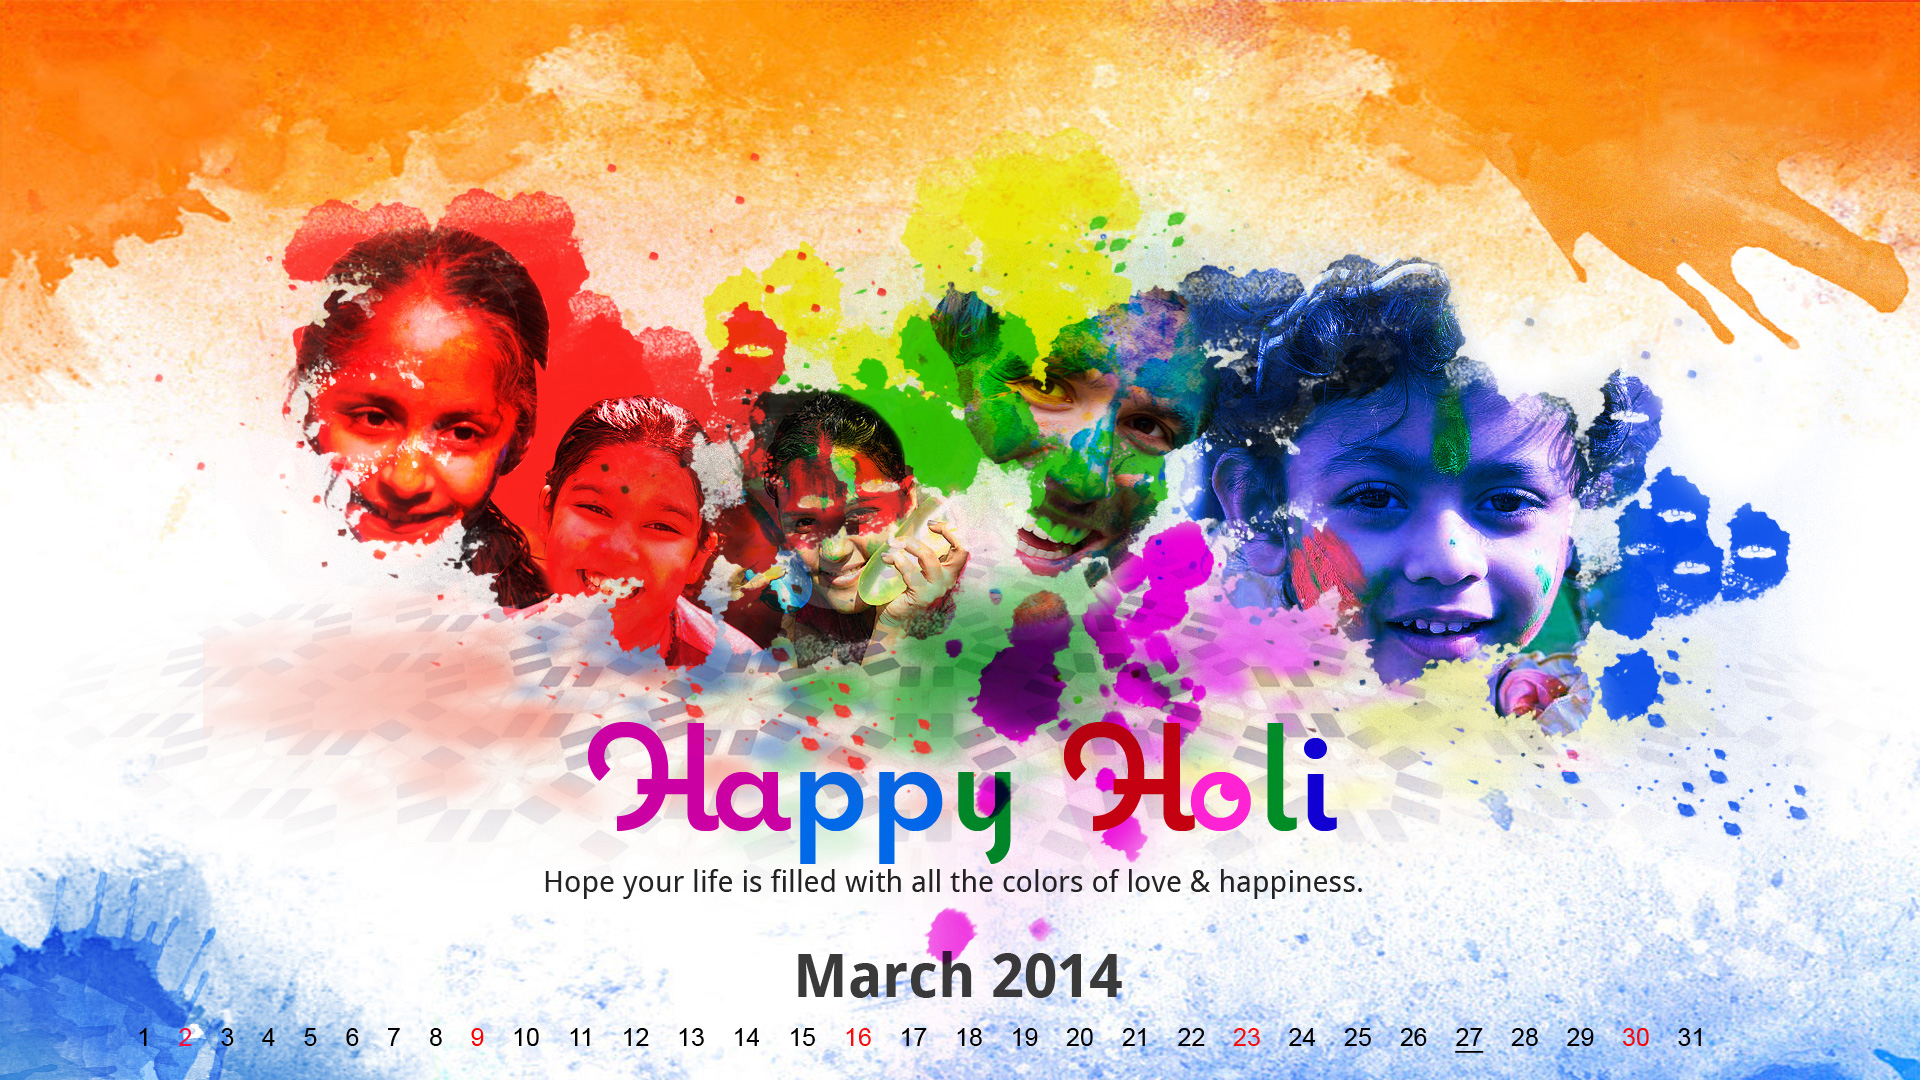 Holi Wallpaper 2014